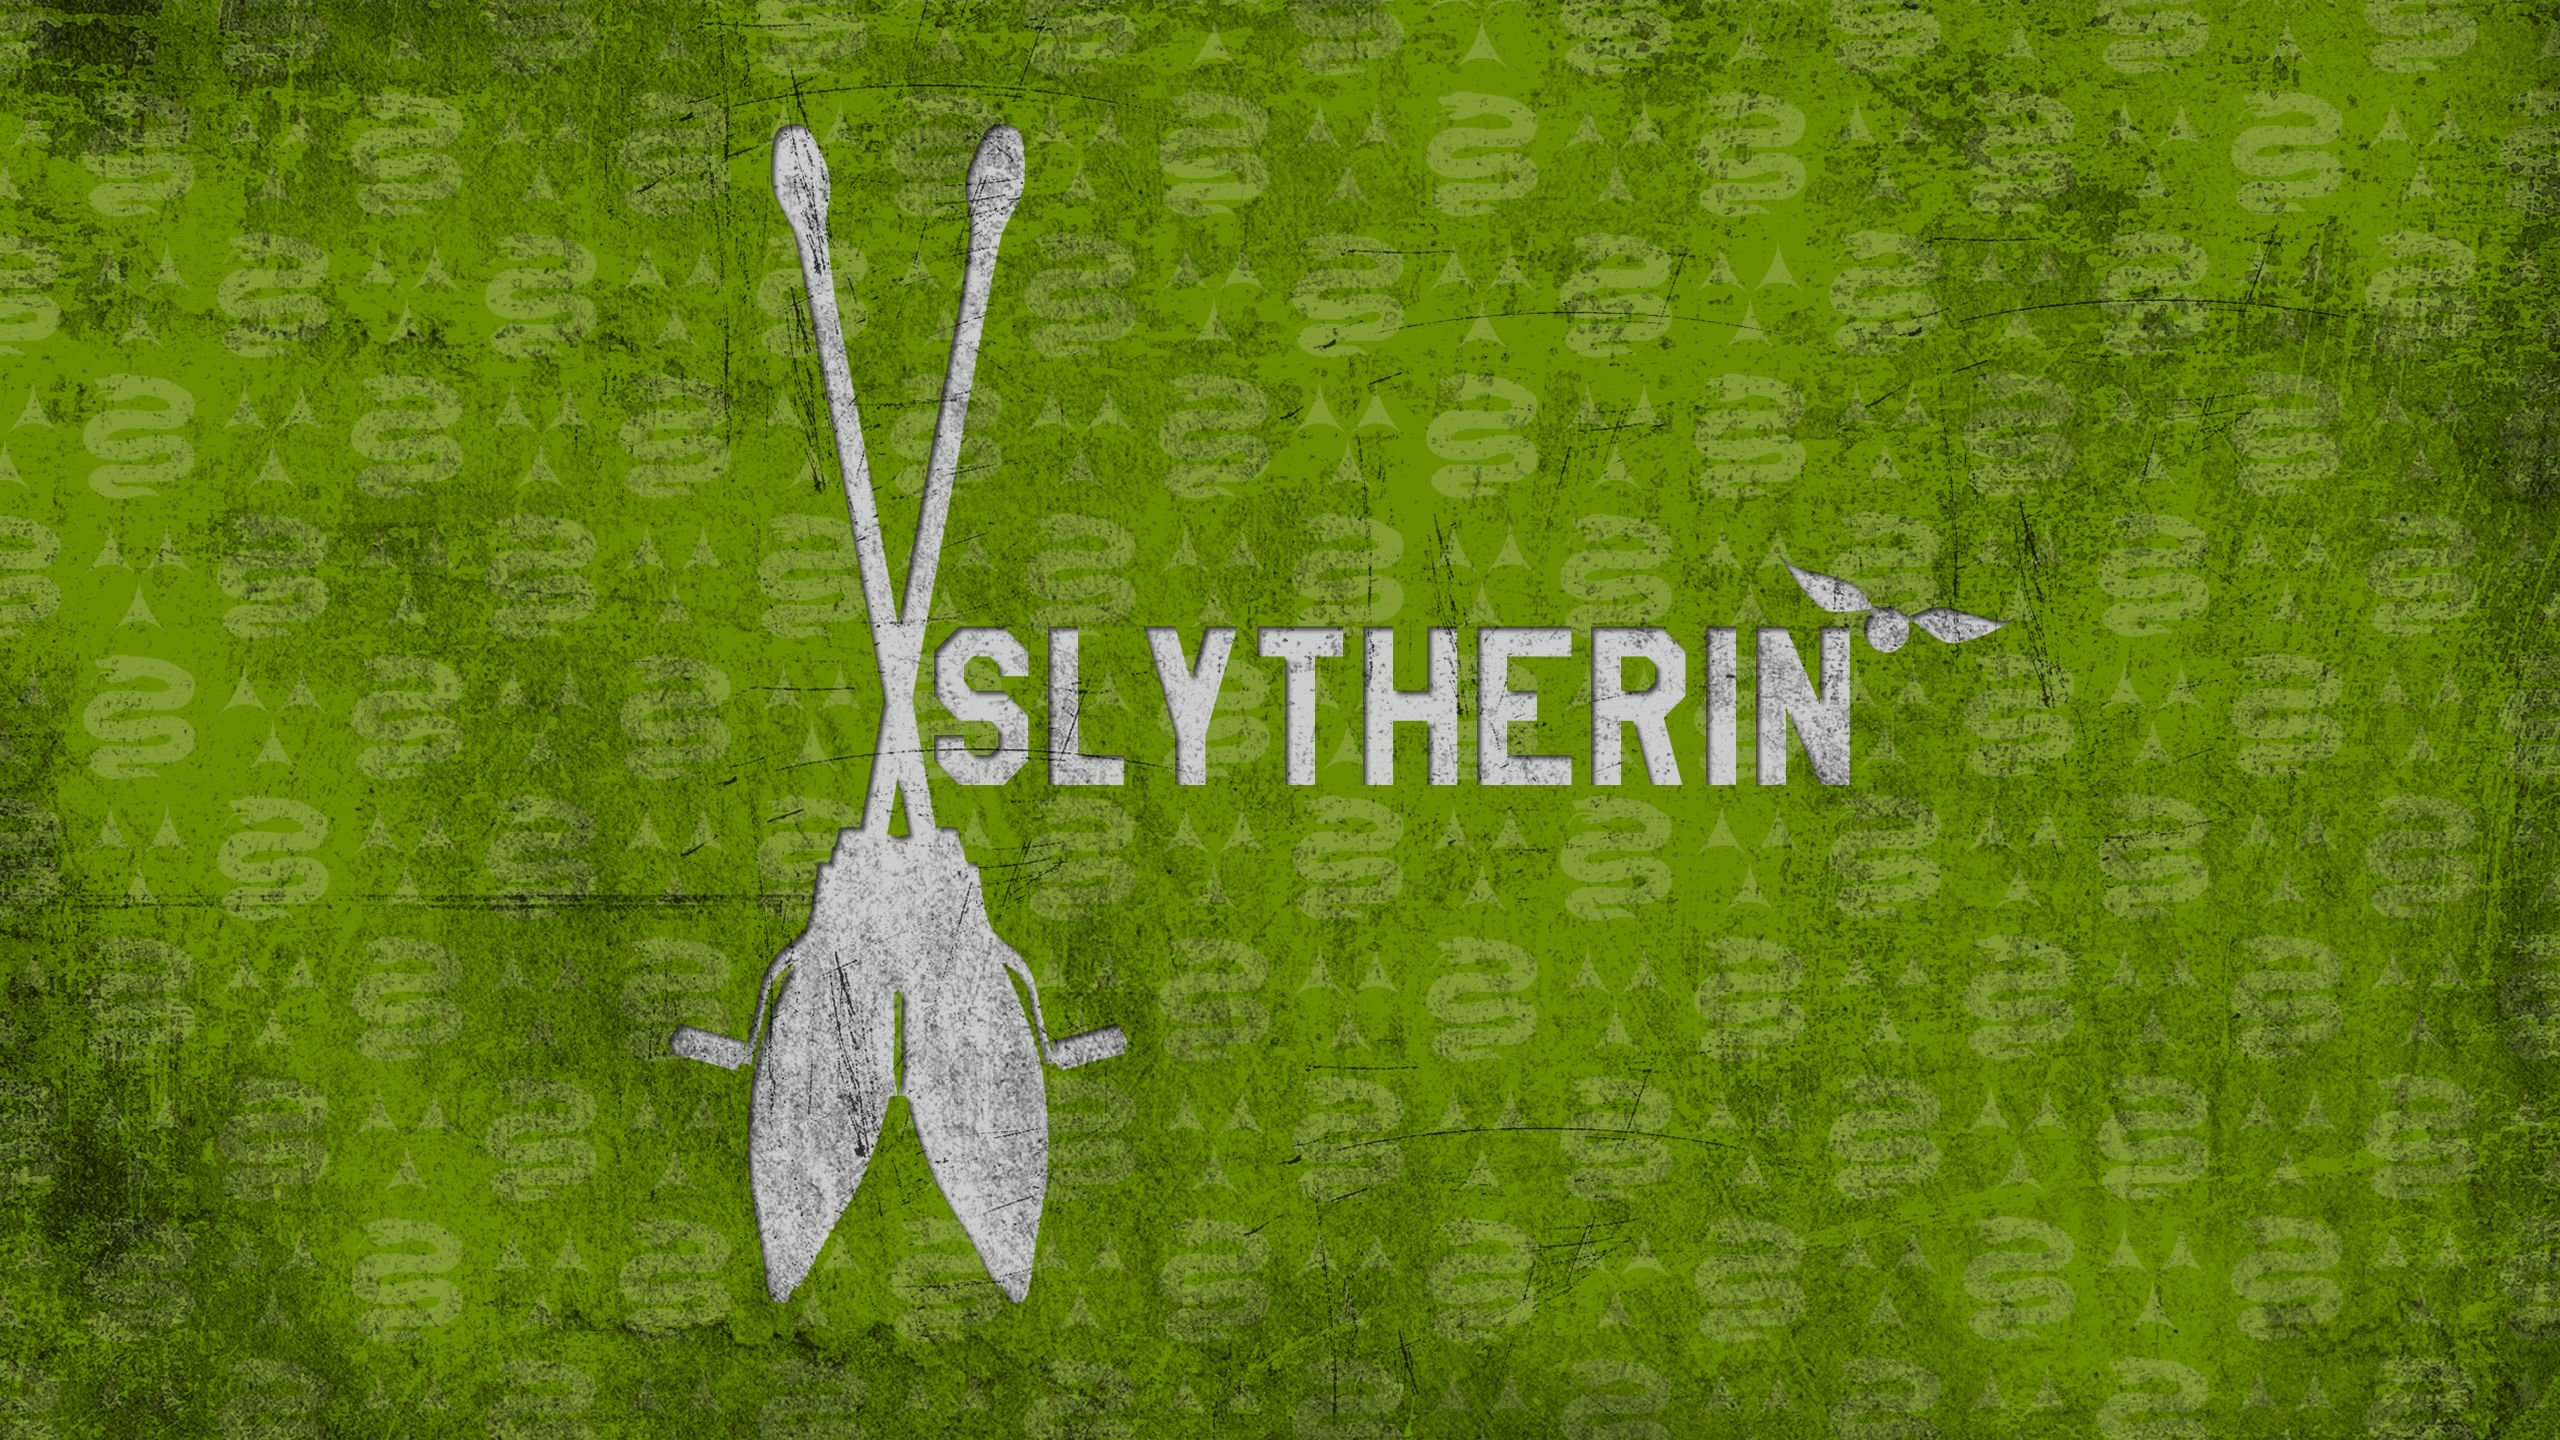 2560x1440 Slytherin wallpapers HD for desktop backgrounds